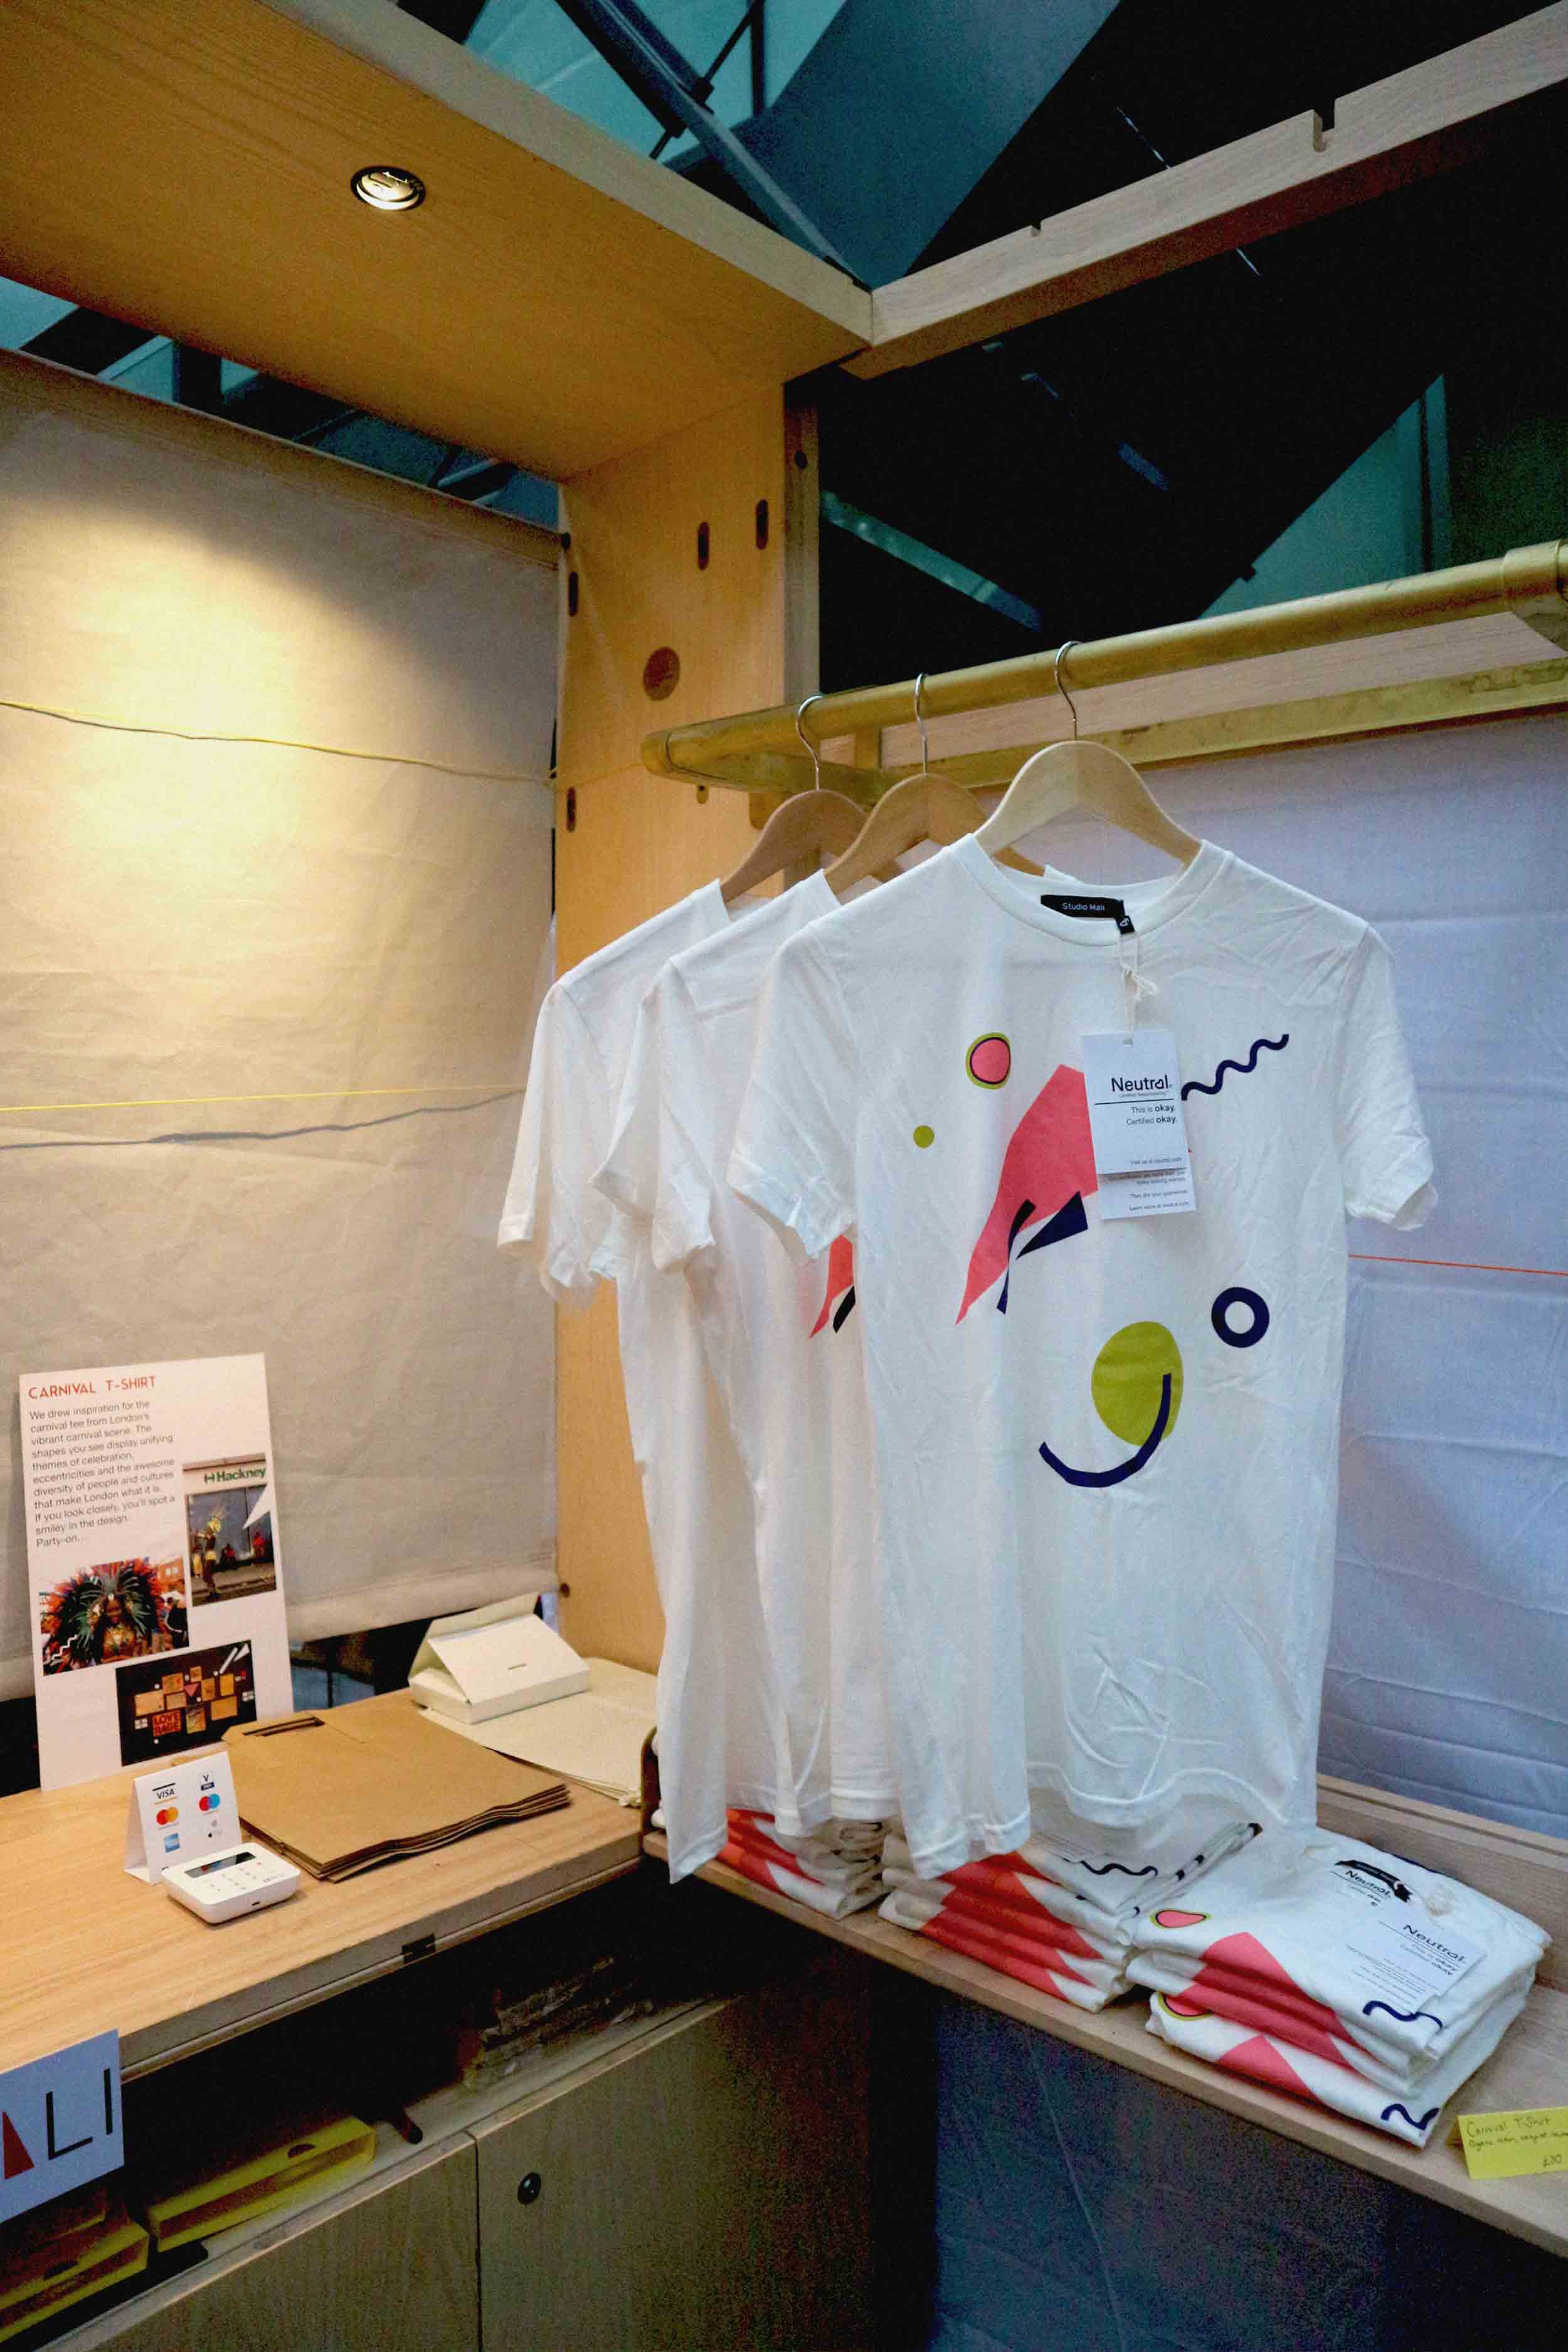 Carnival T-shirts ready for sale. Made from organic cotton, and made in carbon neutral factories powered by 70% wind power. £30 each.